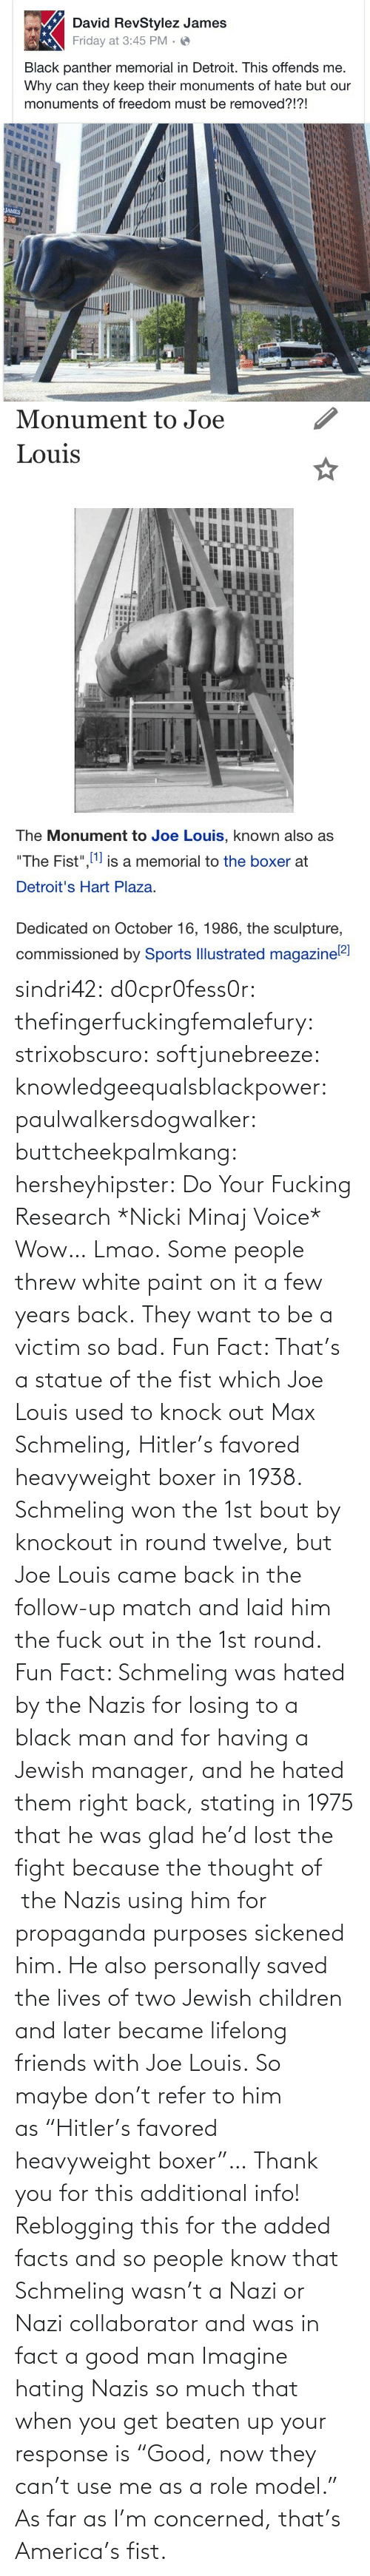 "lives: sindri42:  d0cpr0fess0r:  thefingerfuckingfemalefury:  strixobscuro:  softjunebreeze:  knowledgeequalsblackpower:  paulwalkersdogwalker:   buttcheekpalmkang:   hersheyhipster:  Do Your Fucking Research *Nicki Minaj Voice*    Wow… Lmao.   Some people threw white paint on it a few years back.   They want to be a victim so bad.  Fun Fact: That's a statue of the fist which Joe Louis used to knock out Max Schmeling, Hitler's favored heavyweight boxer in 1938. Schmeling won the 1st bout by knockout in round twelve, but Joe Louis came back in the follow-up match and laid him the fuck out in the 1st round.  Fun Fact: Schmeling was hated by the Nazis for losing to a black man and for having a Jewish manager, and he hated them right back, stating in 1975 that he was glad he'd lost the fight because the thought of  the Nazis using him for propaganda purposes sickened him. He also personally saved the lives of two Jewish children and later became lifelong friends with Joe Louis. So maybe don't refer to him as ""Hitler's favored heavyweight boxer""…  Thank you for this additional info! Reblogging this for the added facts and so people know that Schmeling wasn't a Nazi or Nazi collaborator and was in fact a good man   Imagine hating Nazis so much that when you get beaten up your response is ""Good, now they can't use me as a role model.""  As far as I'm concerned, that's America's fist."